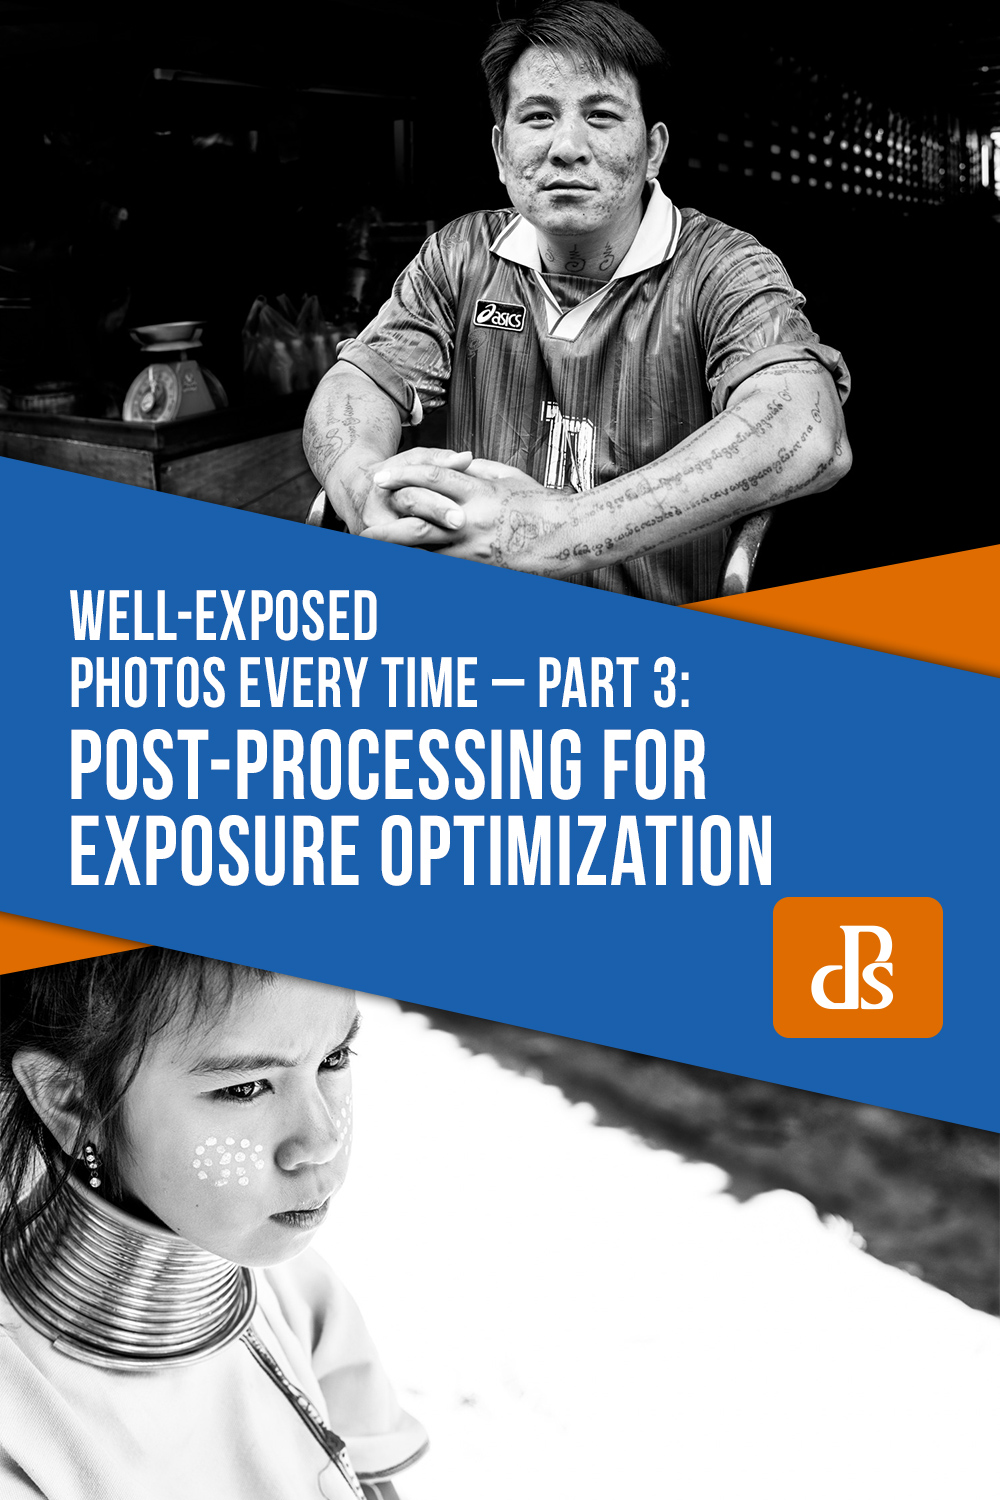 How to Make Well Exposed Photos Every Time - Part Three - Post-Processing for Exposure Optimization